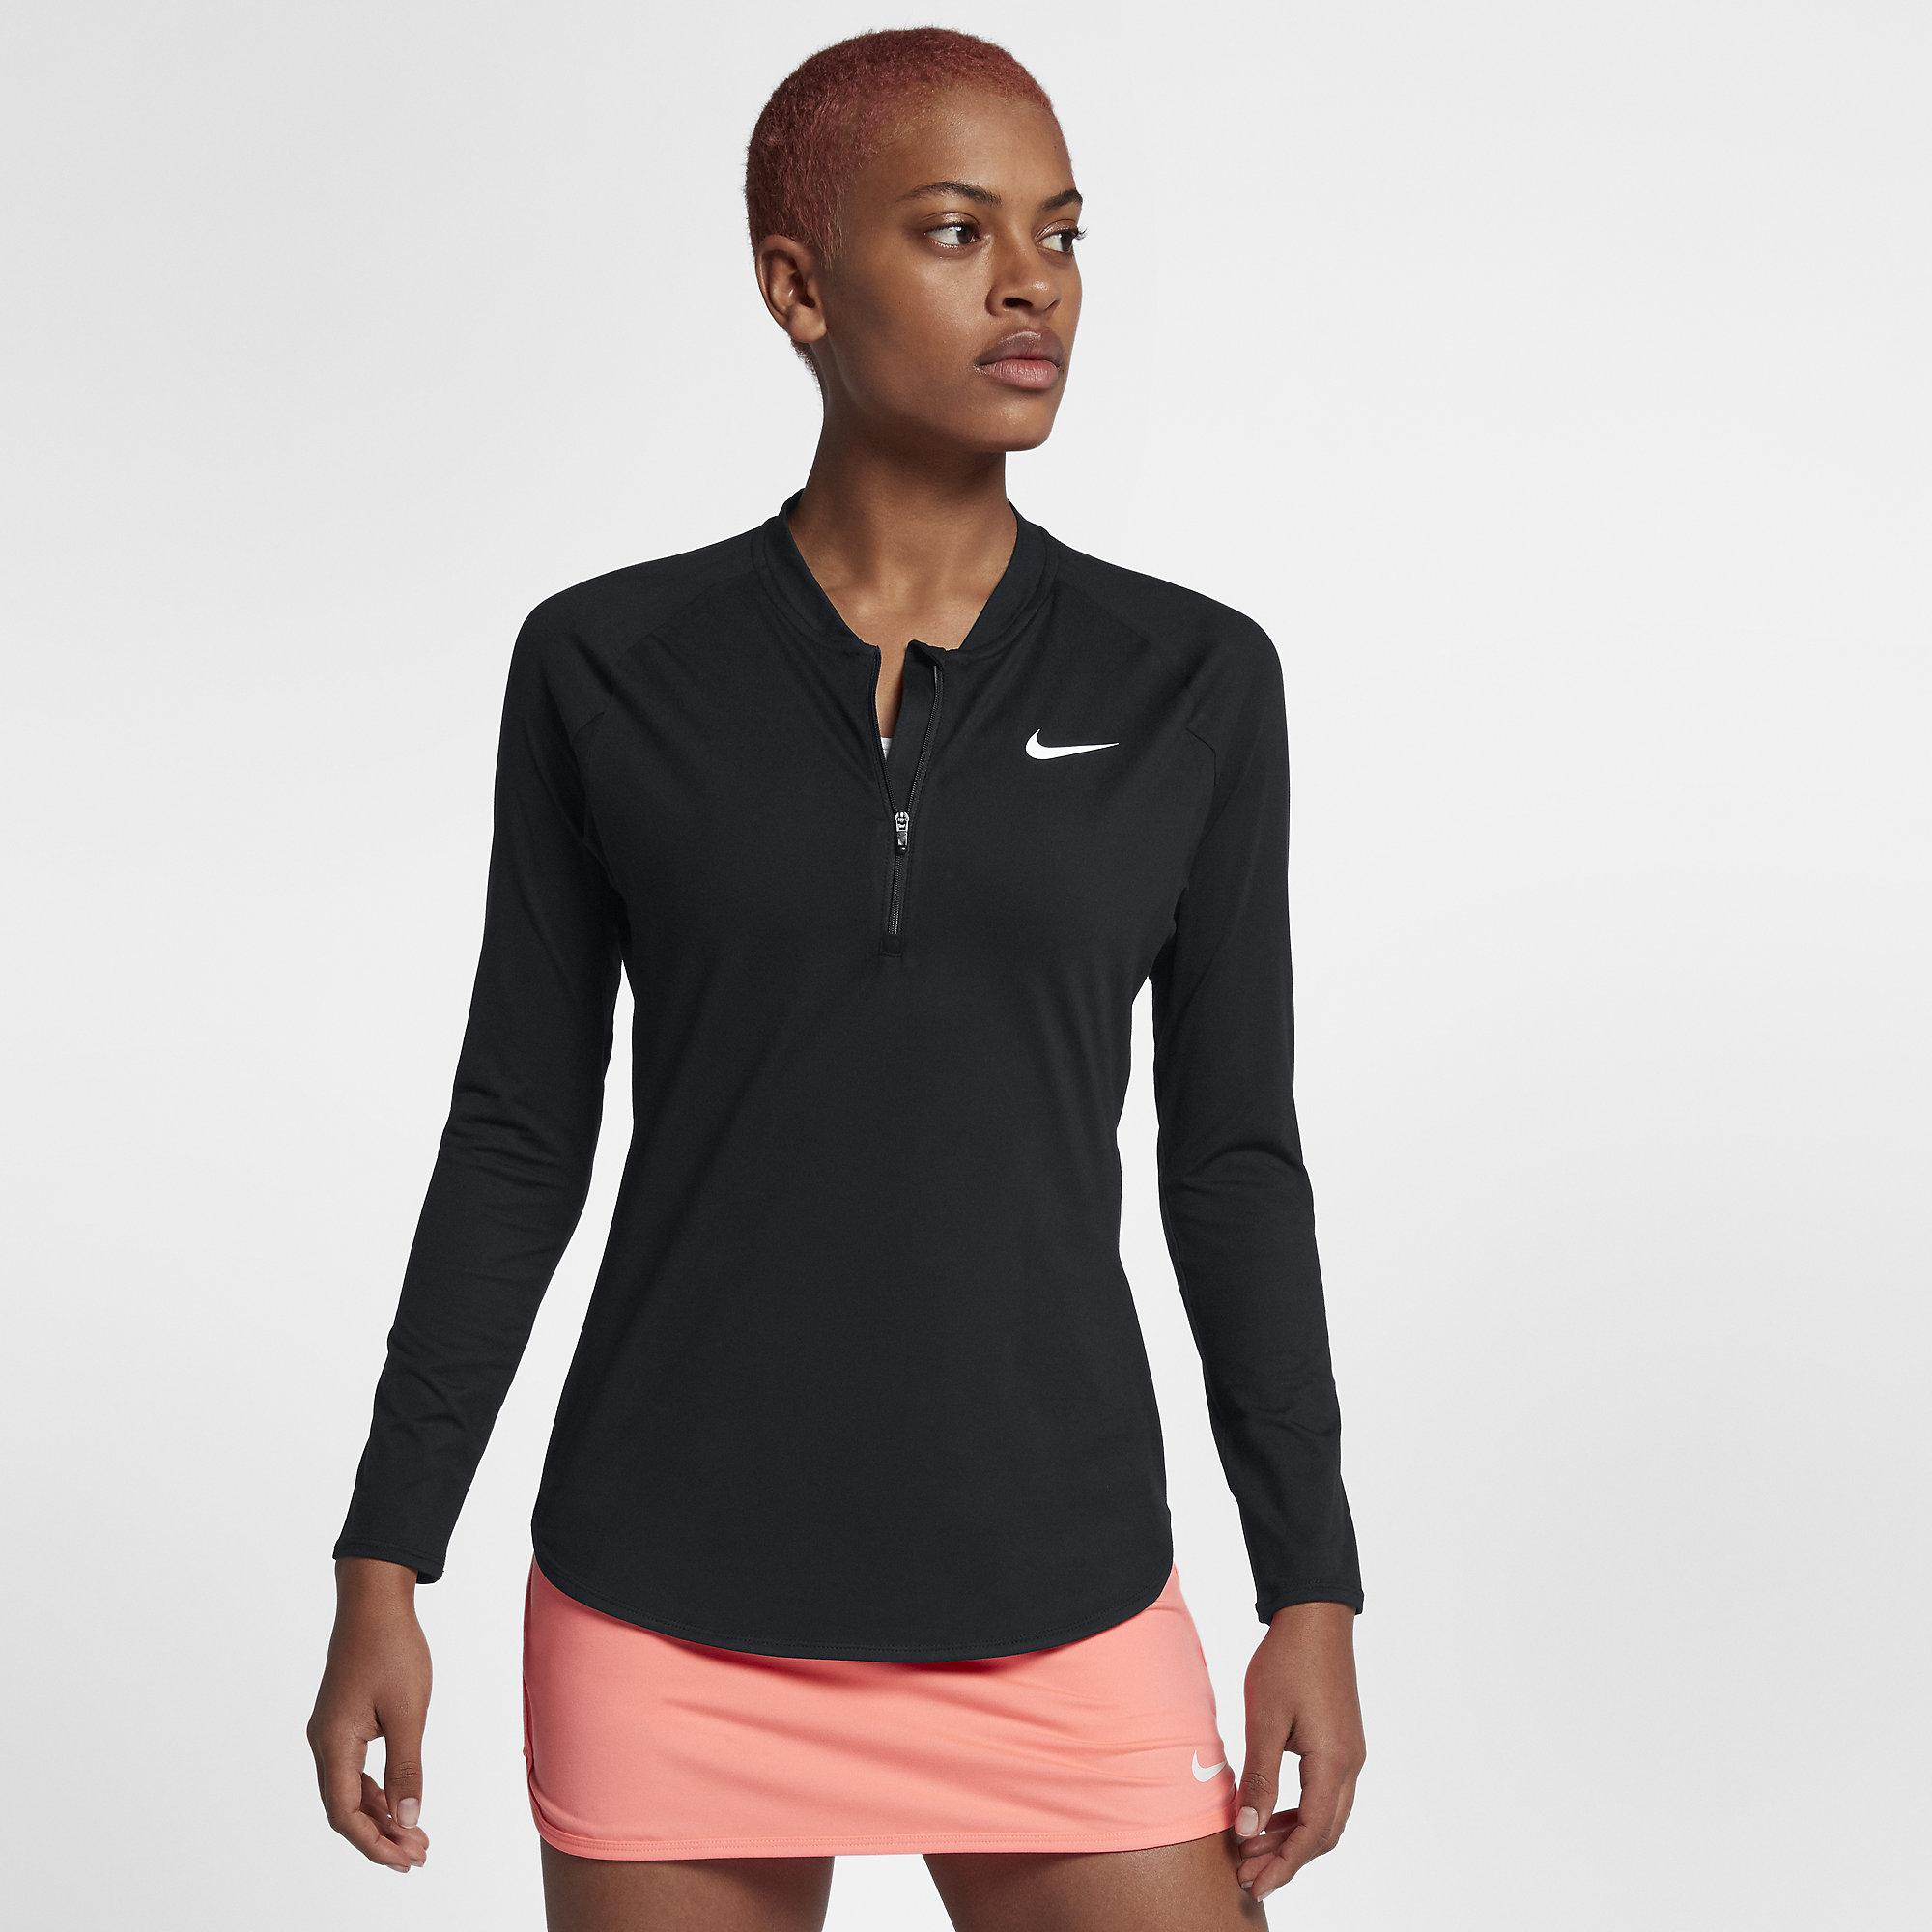 Nike Womens Pure Half-Zip Tennis Top - Black/White ...